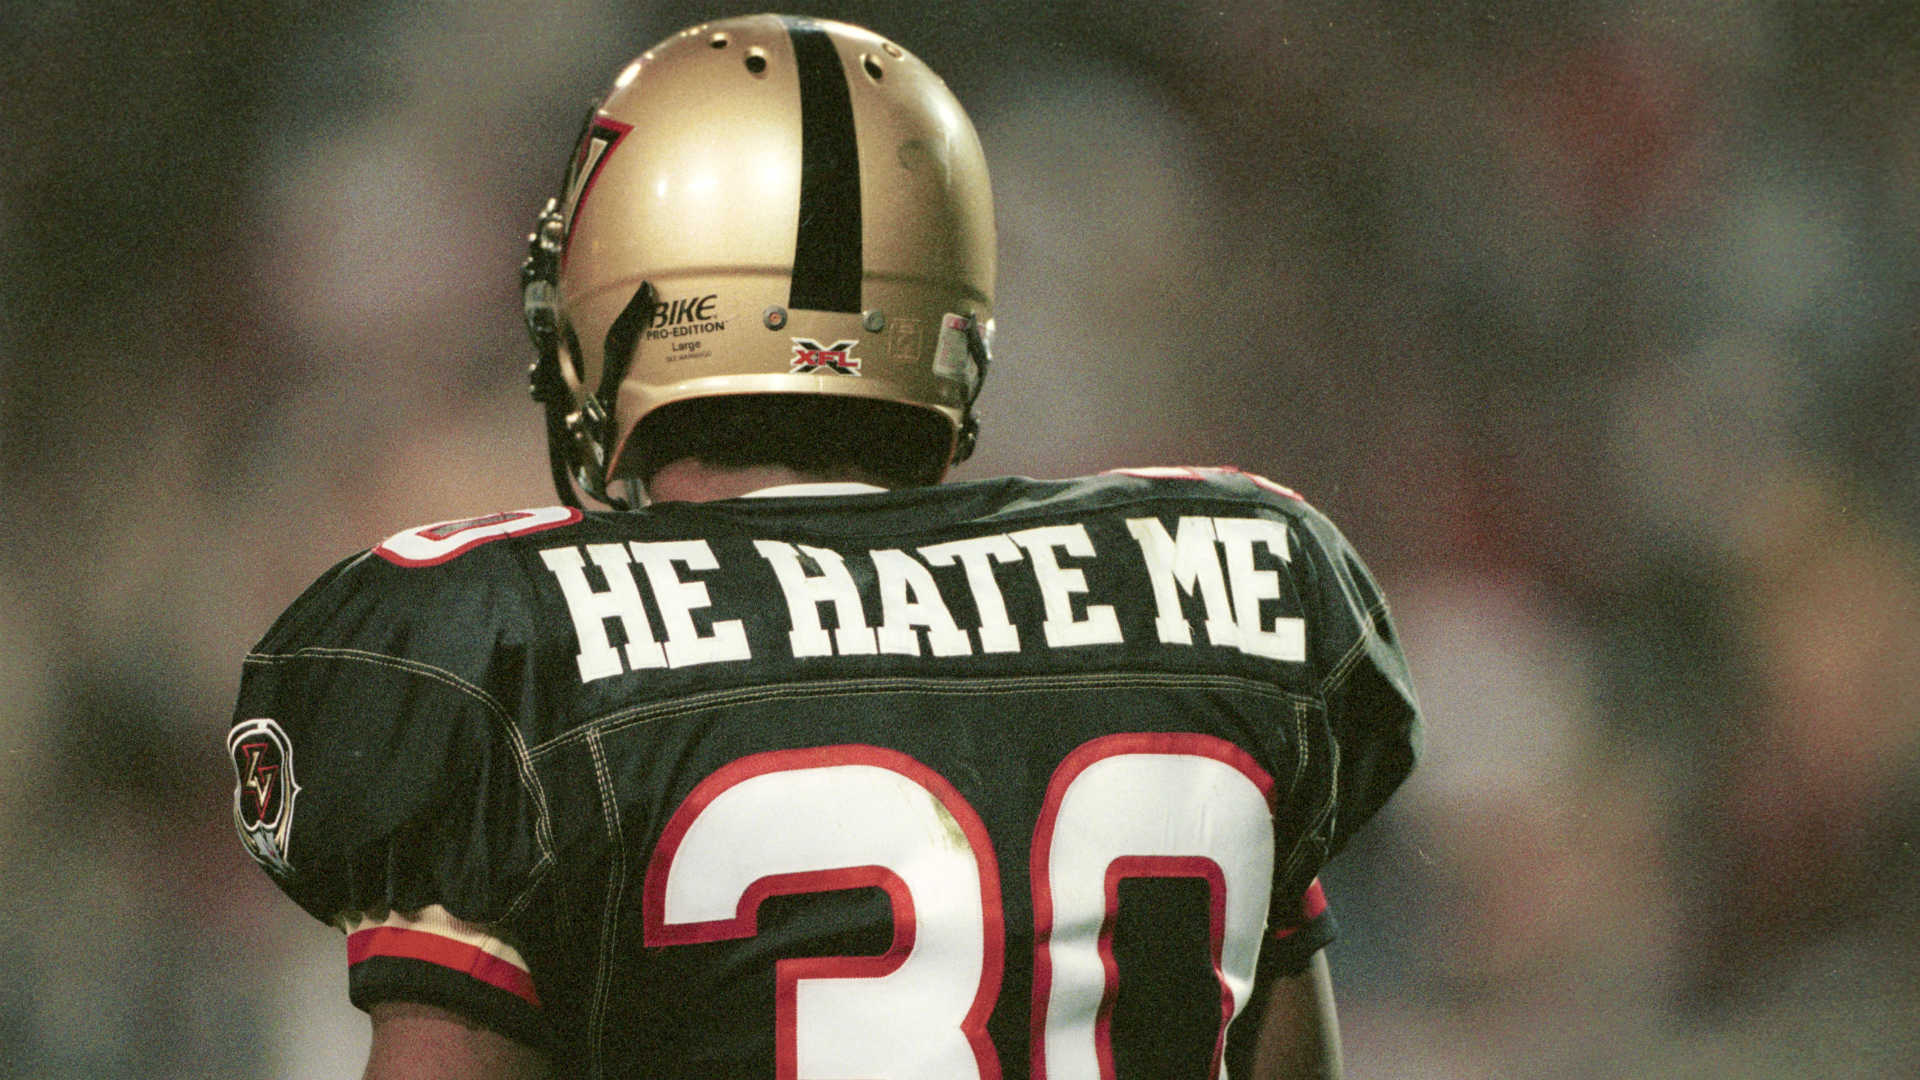 Missing XFL legend Rod 'He Hate Me' Smart found safe, authorities say